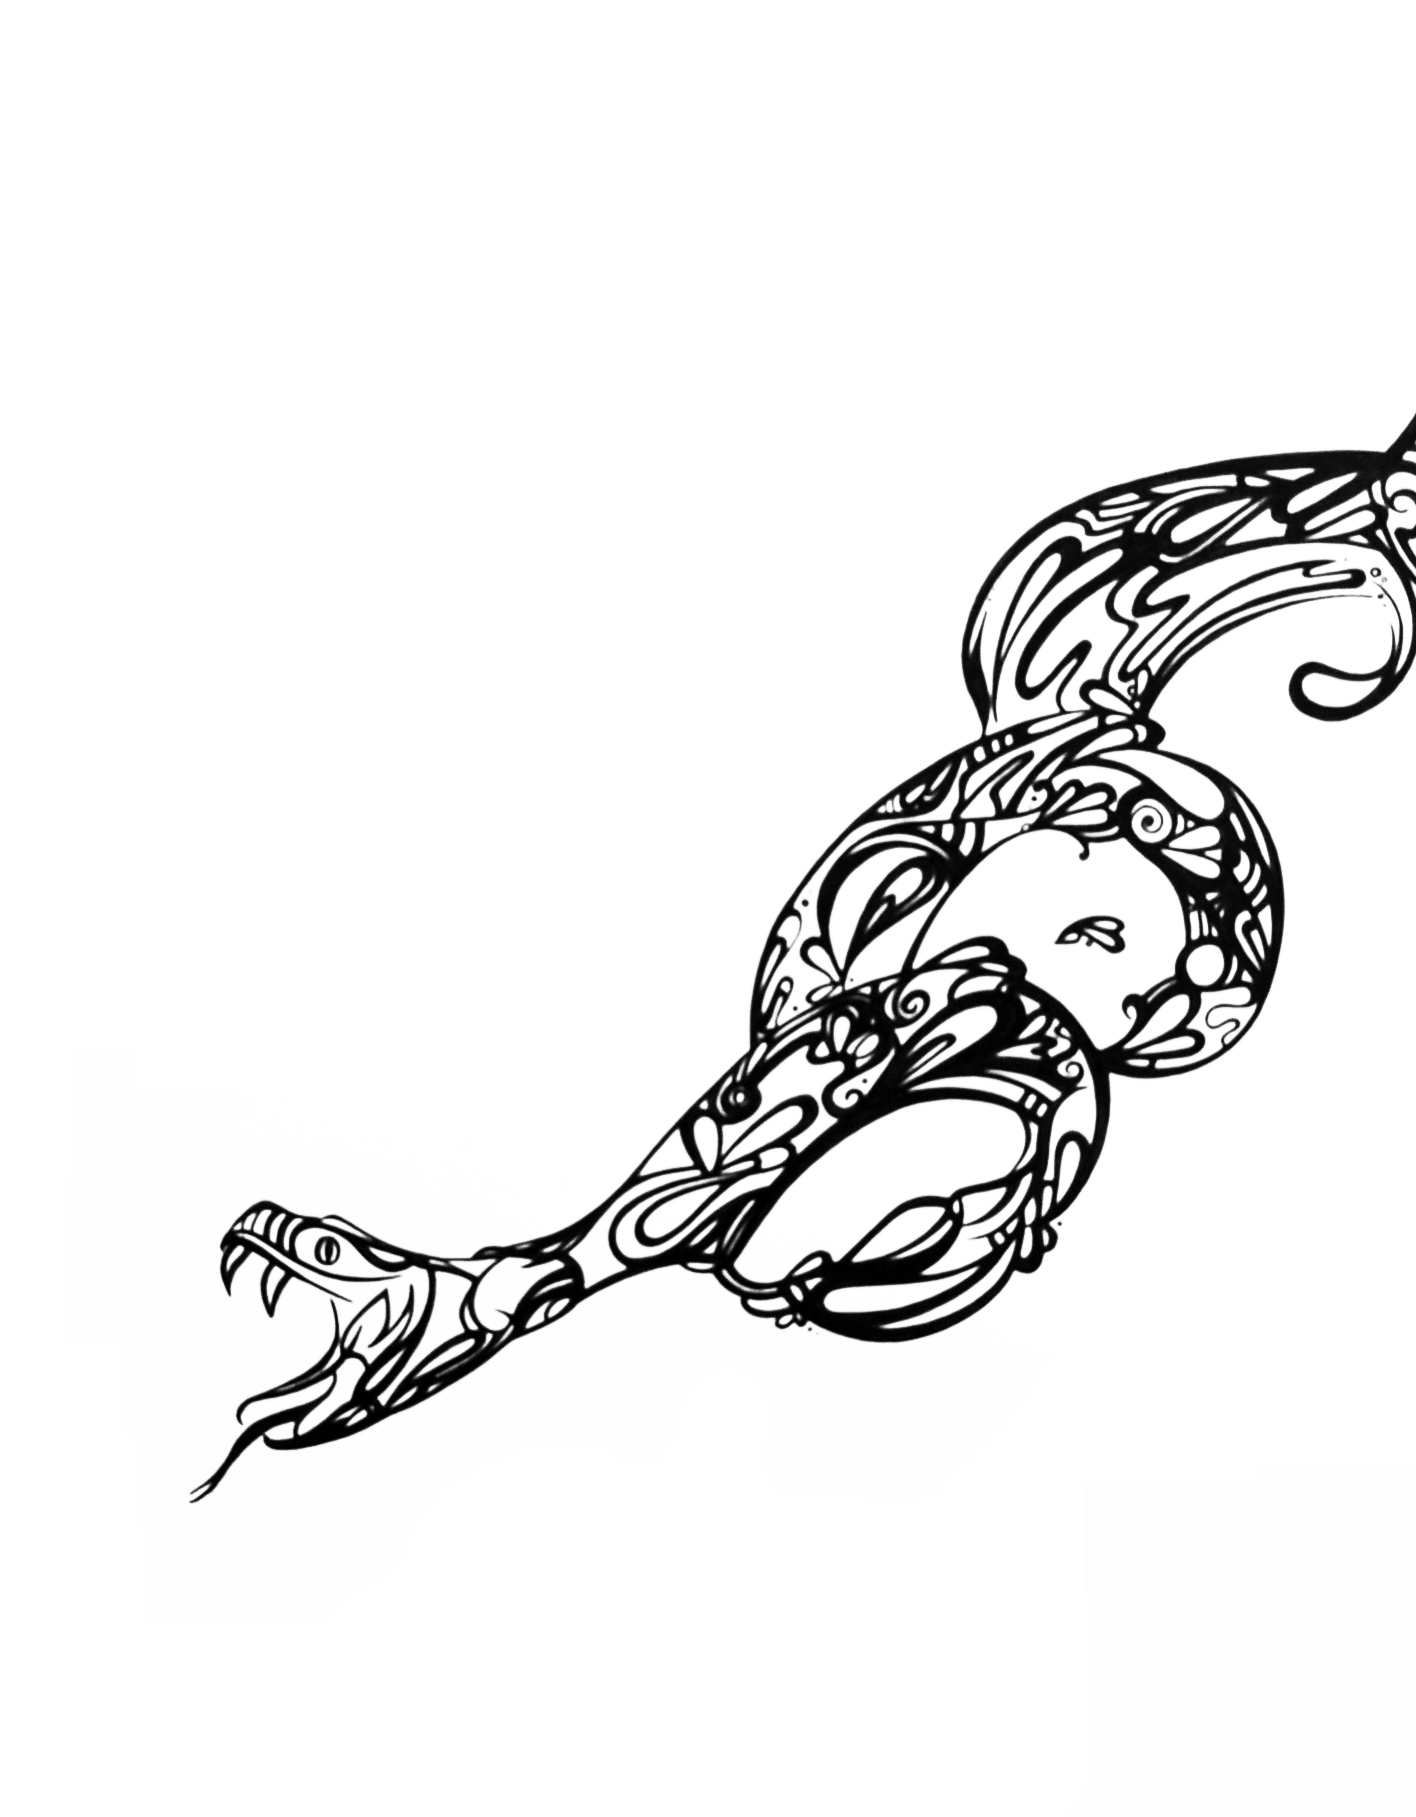 Line Drawing Snake : Snake line drawing clipart best